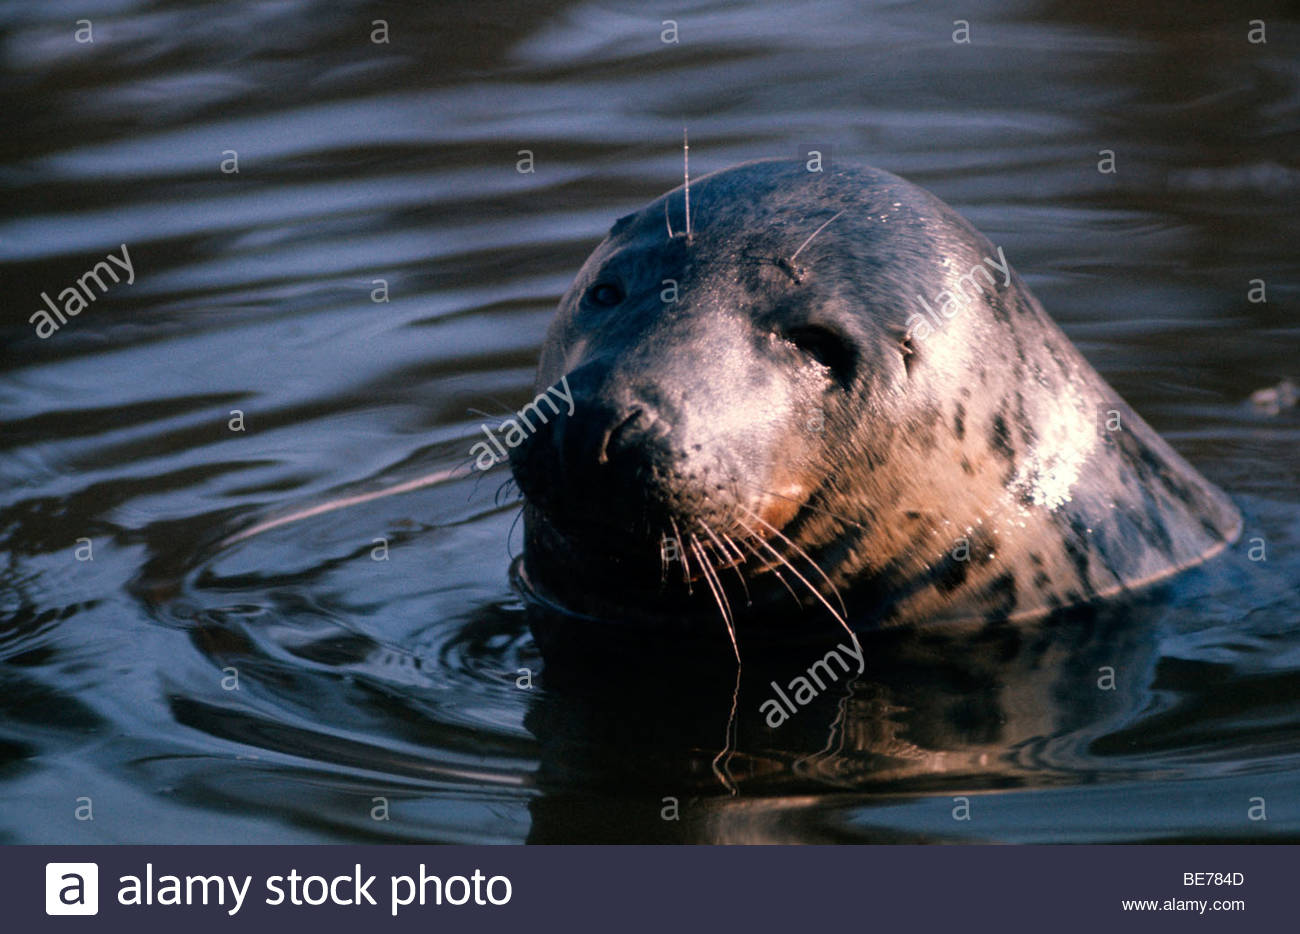 Close-up of a seal in water Stock Photo